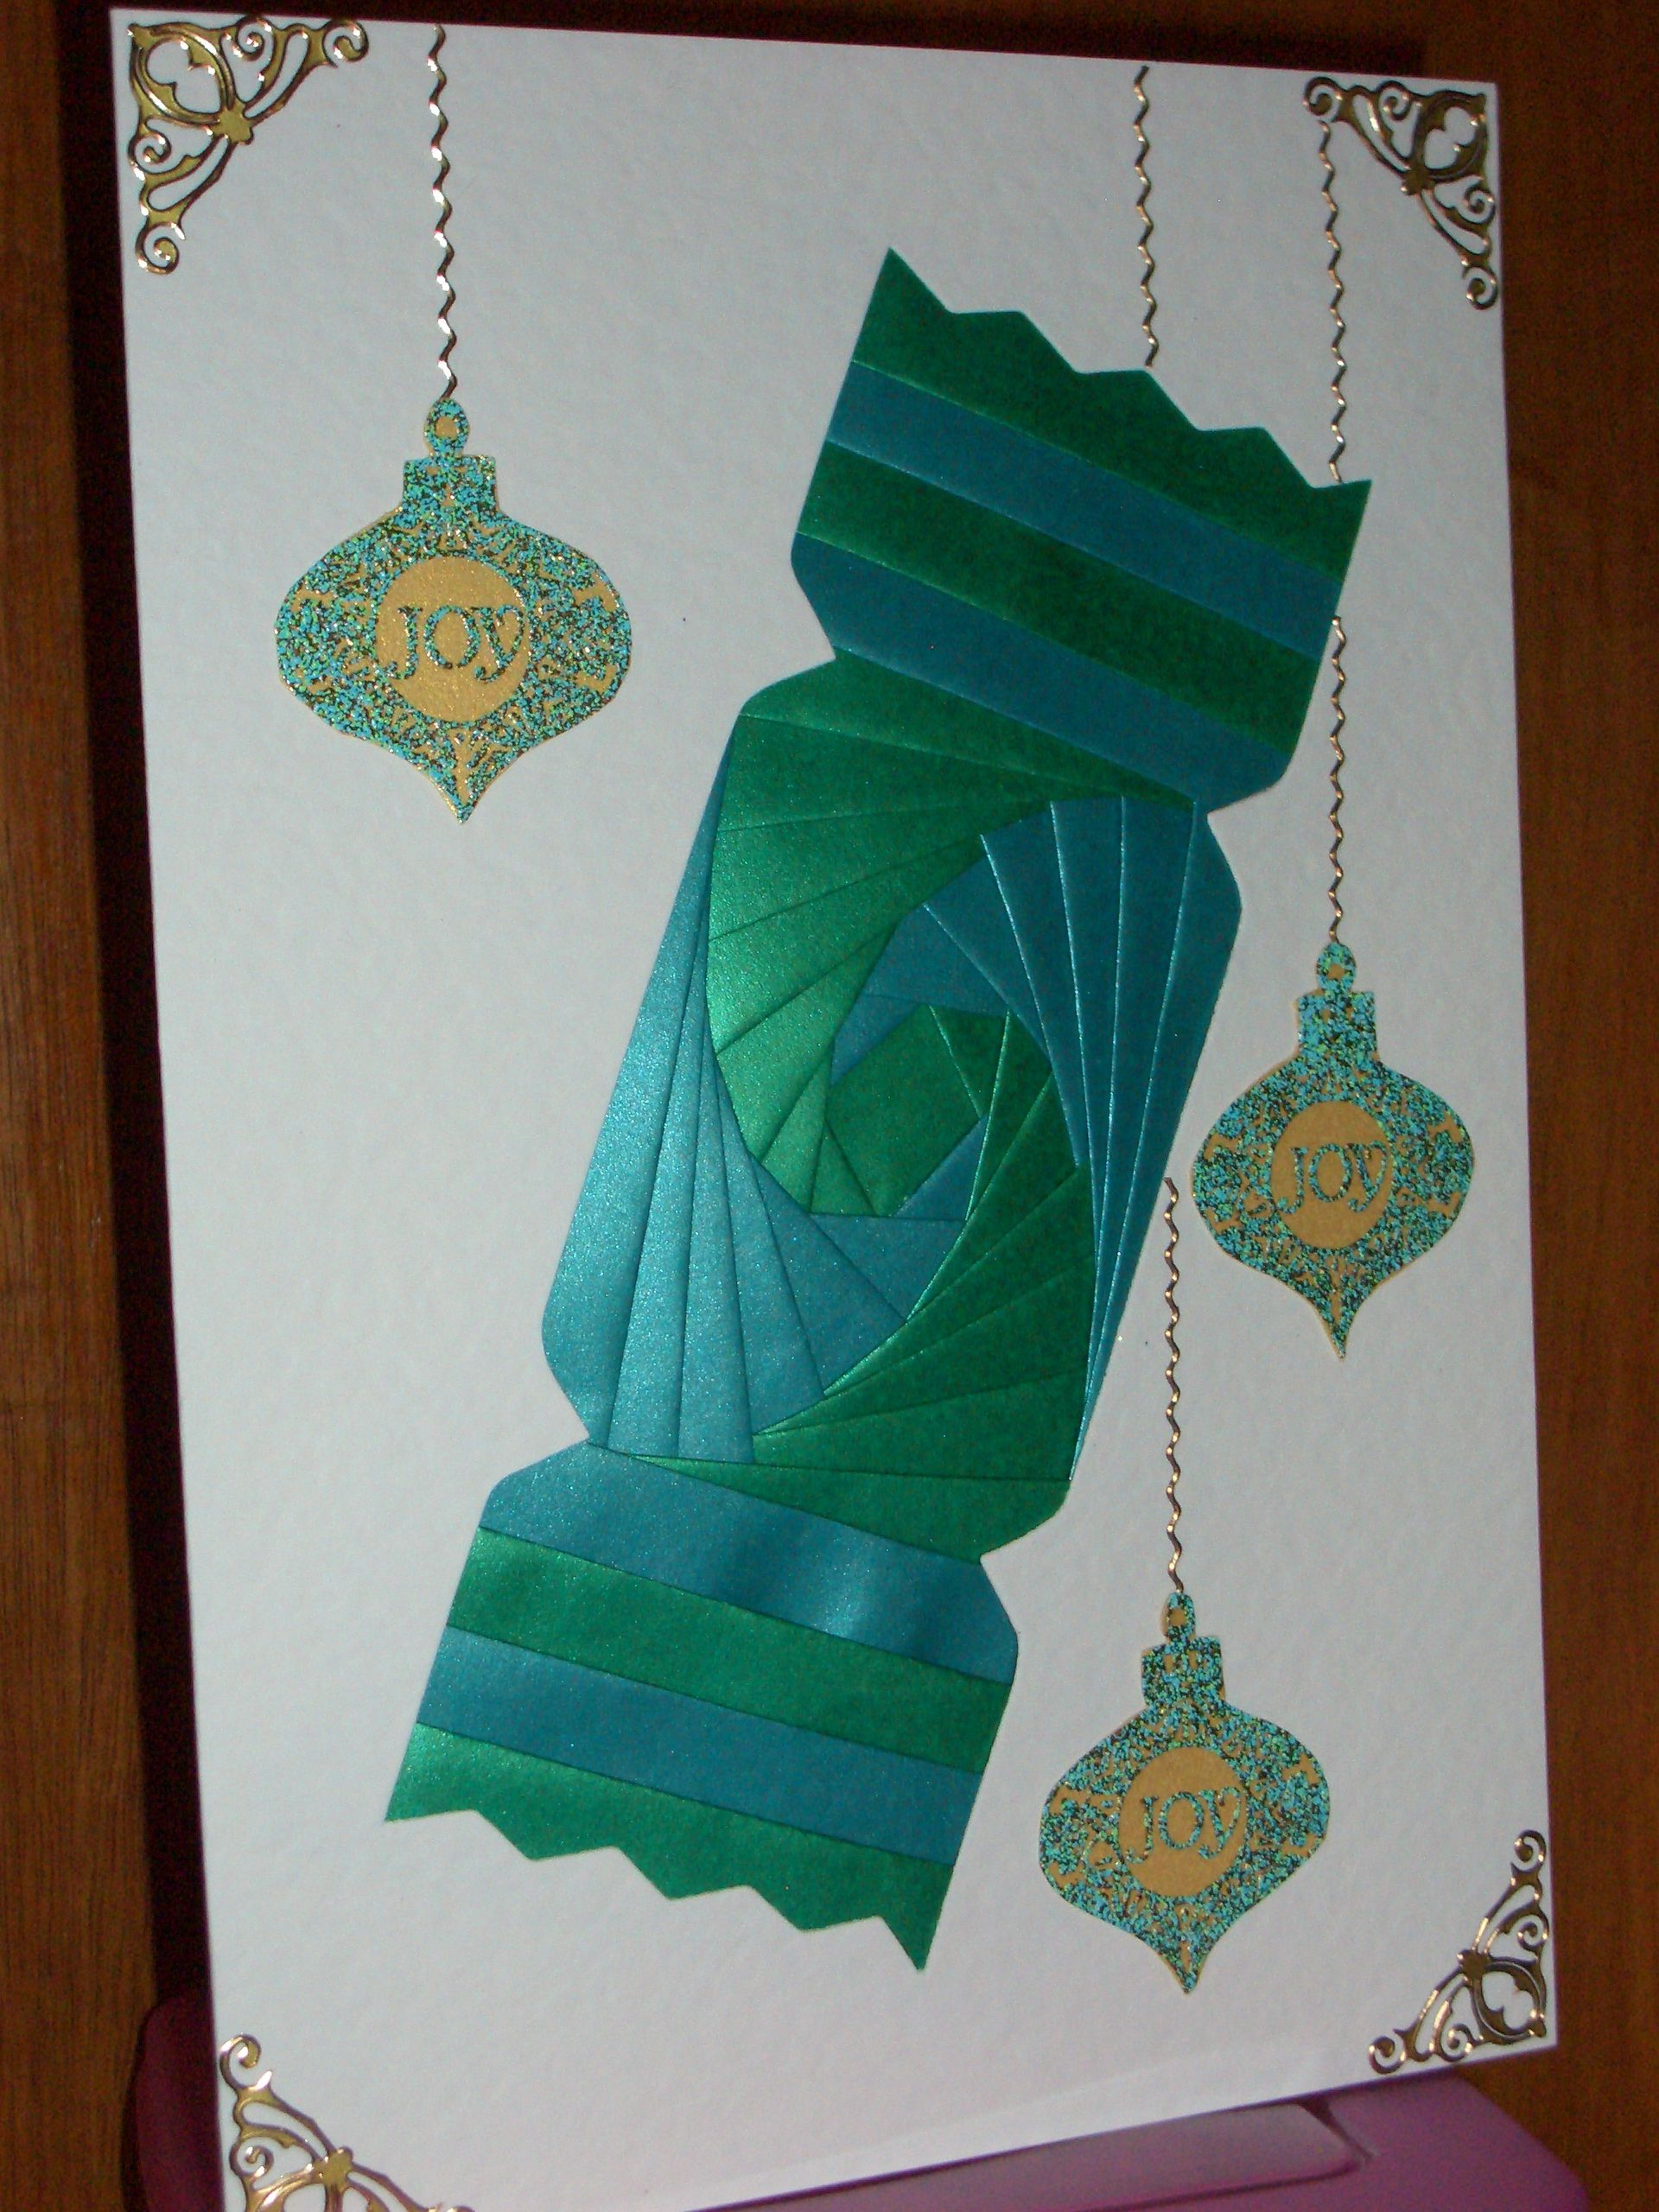 Christmas Cracker Card Card Blank Paper From Dee Craft Embellishments From My Own Stash Iris Folding Pattern Iris Folding Templates Iris Folding